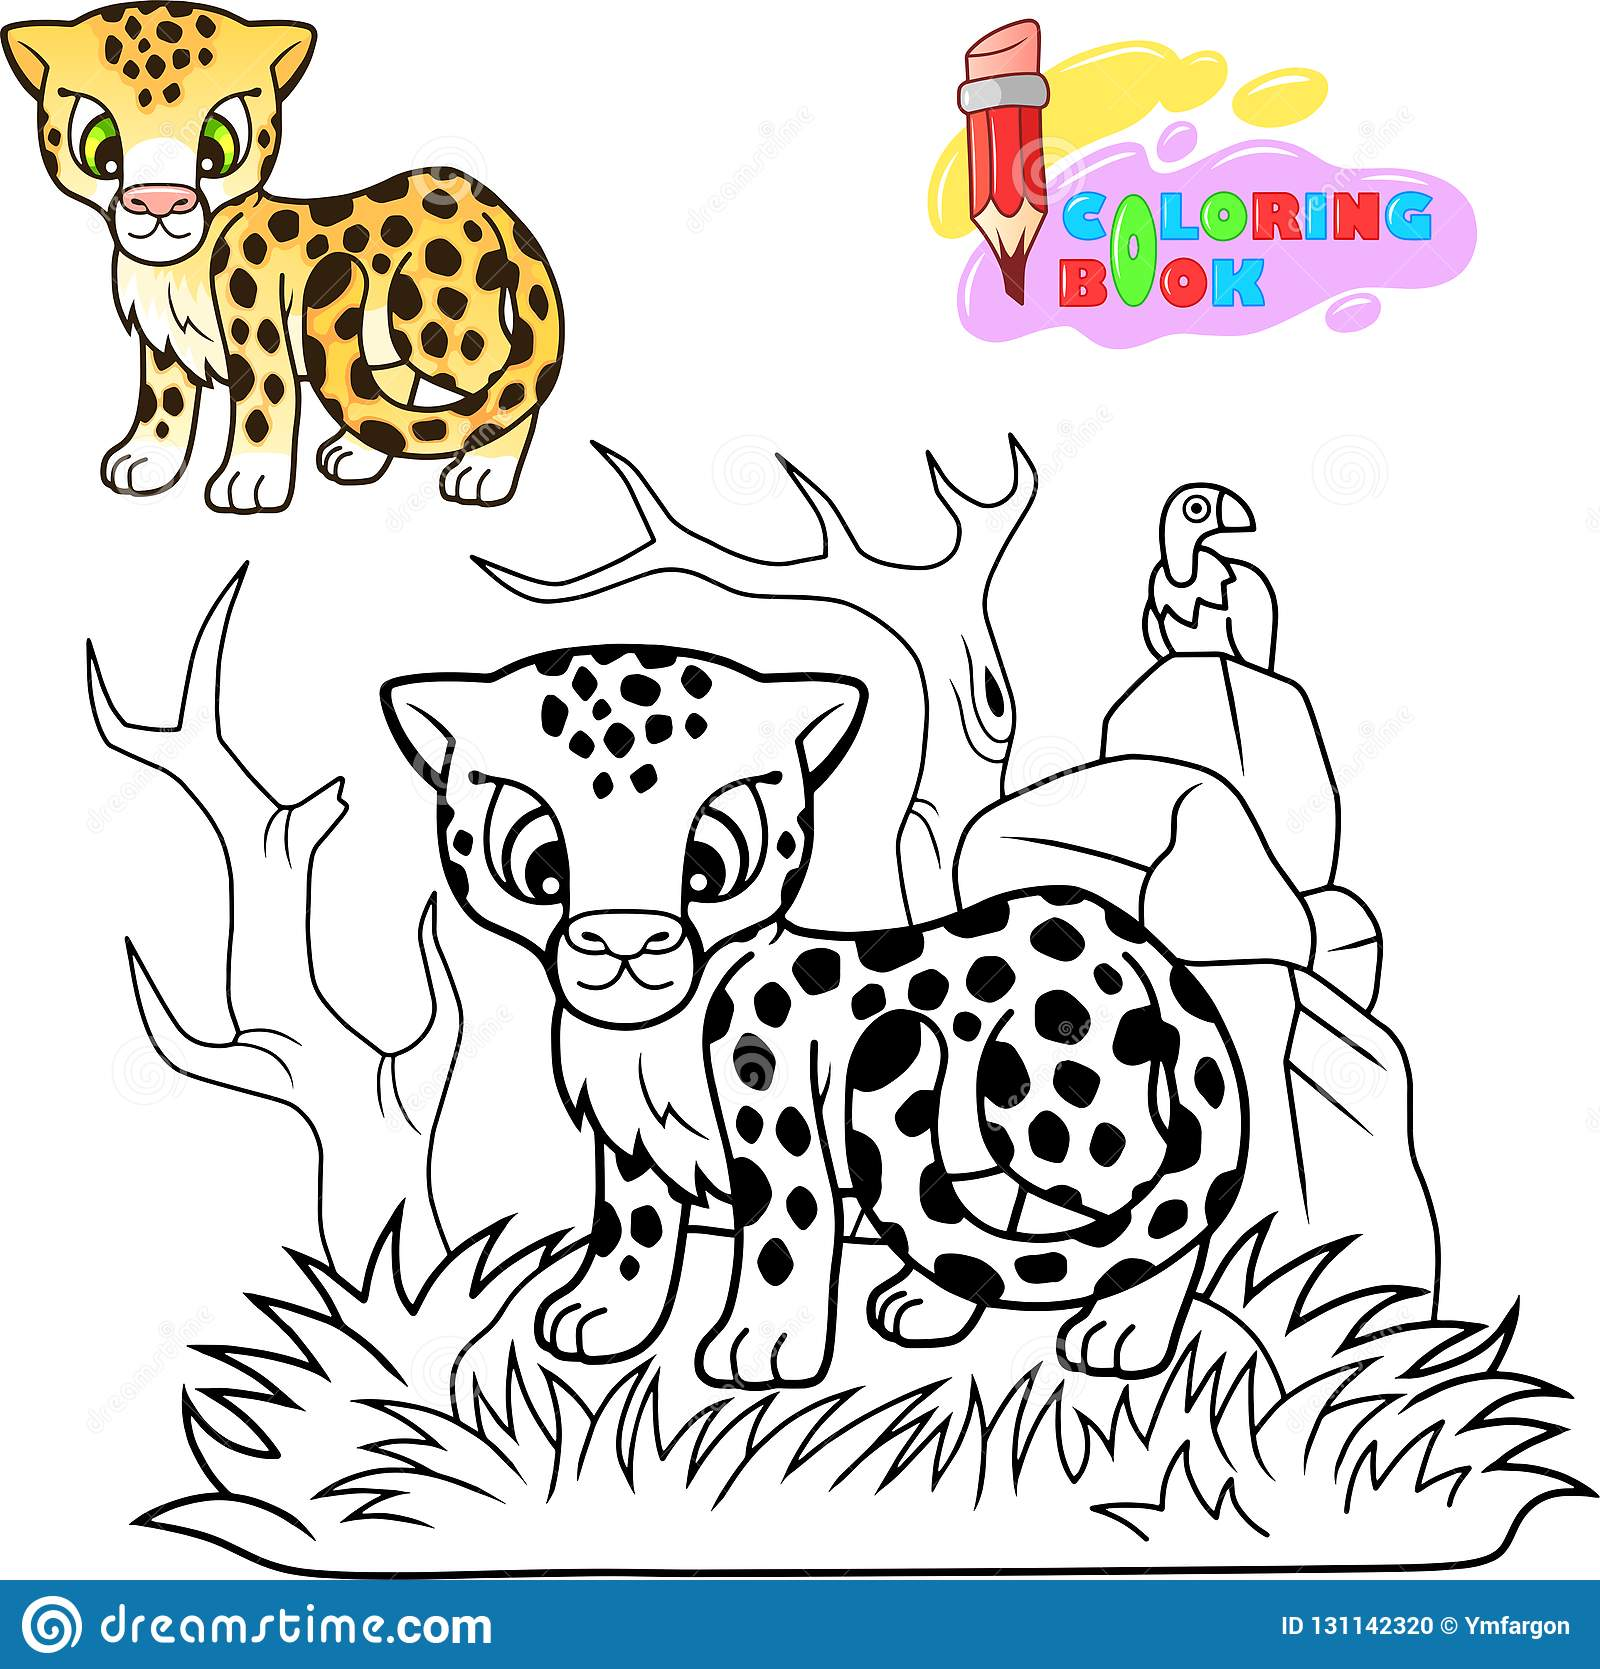 25 Best Cheetah Coloring Pages For Your Little Ones | Coloring ... | 1669x1600